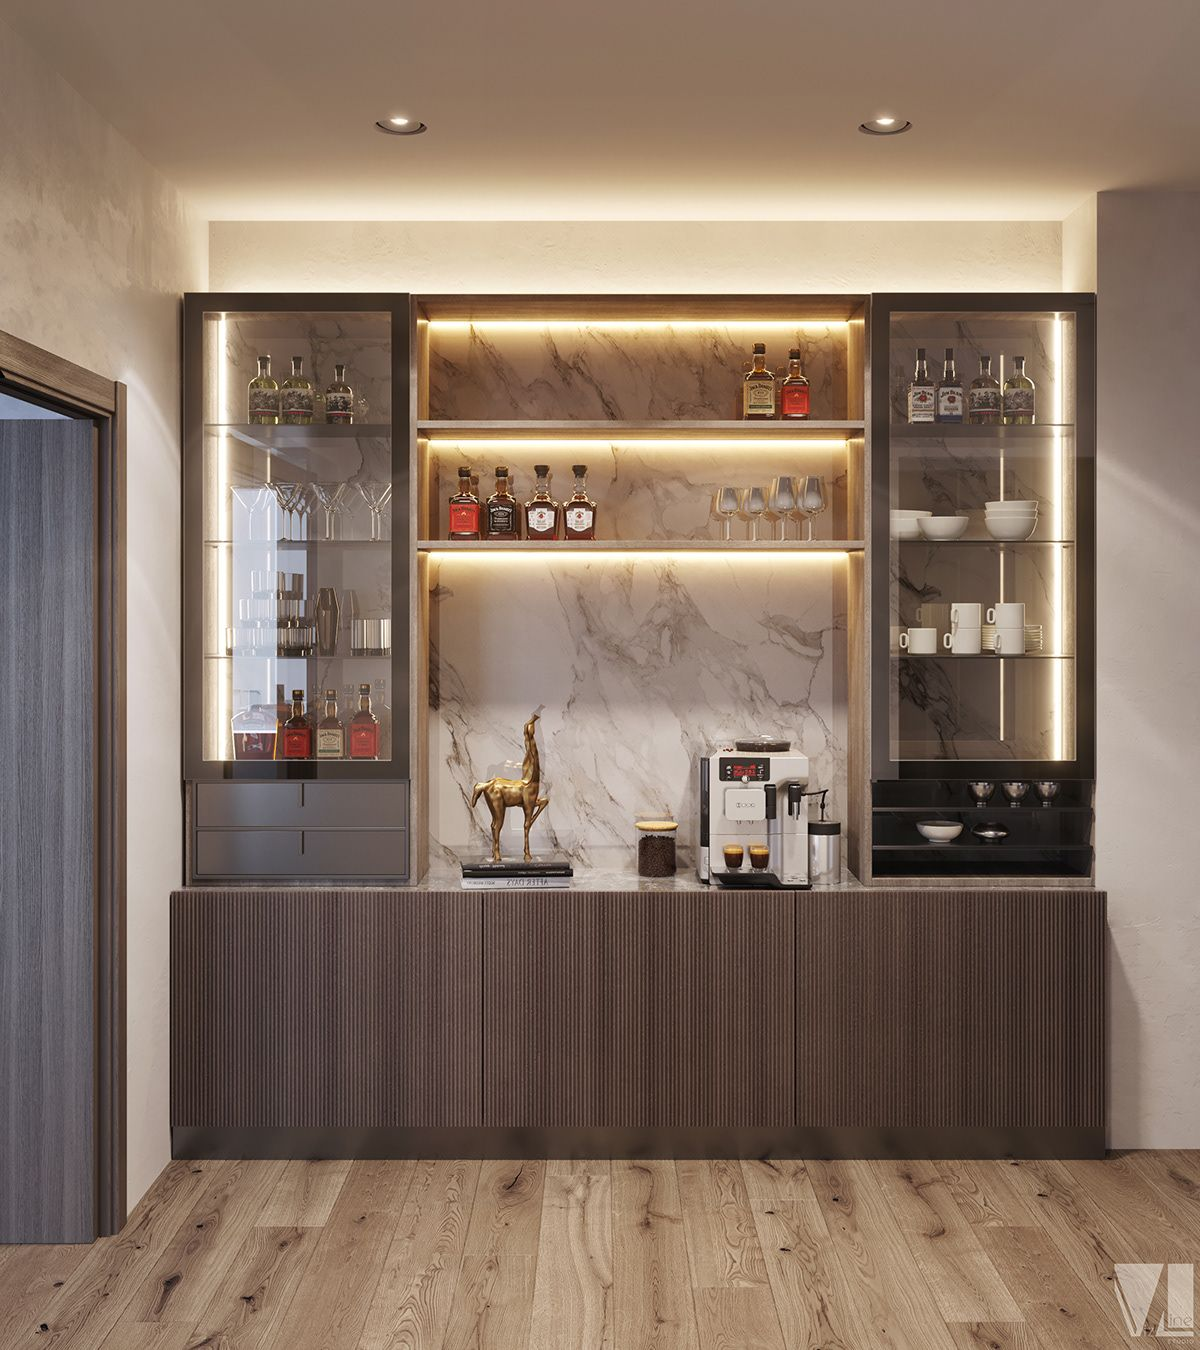 Interior Design Ideas Home Bar: Pin By Camilla Von Golaszewski On Work Ideas In 2020